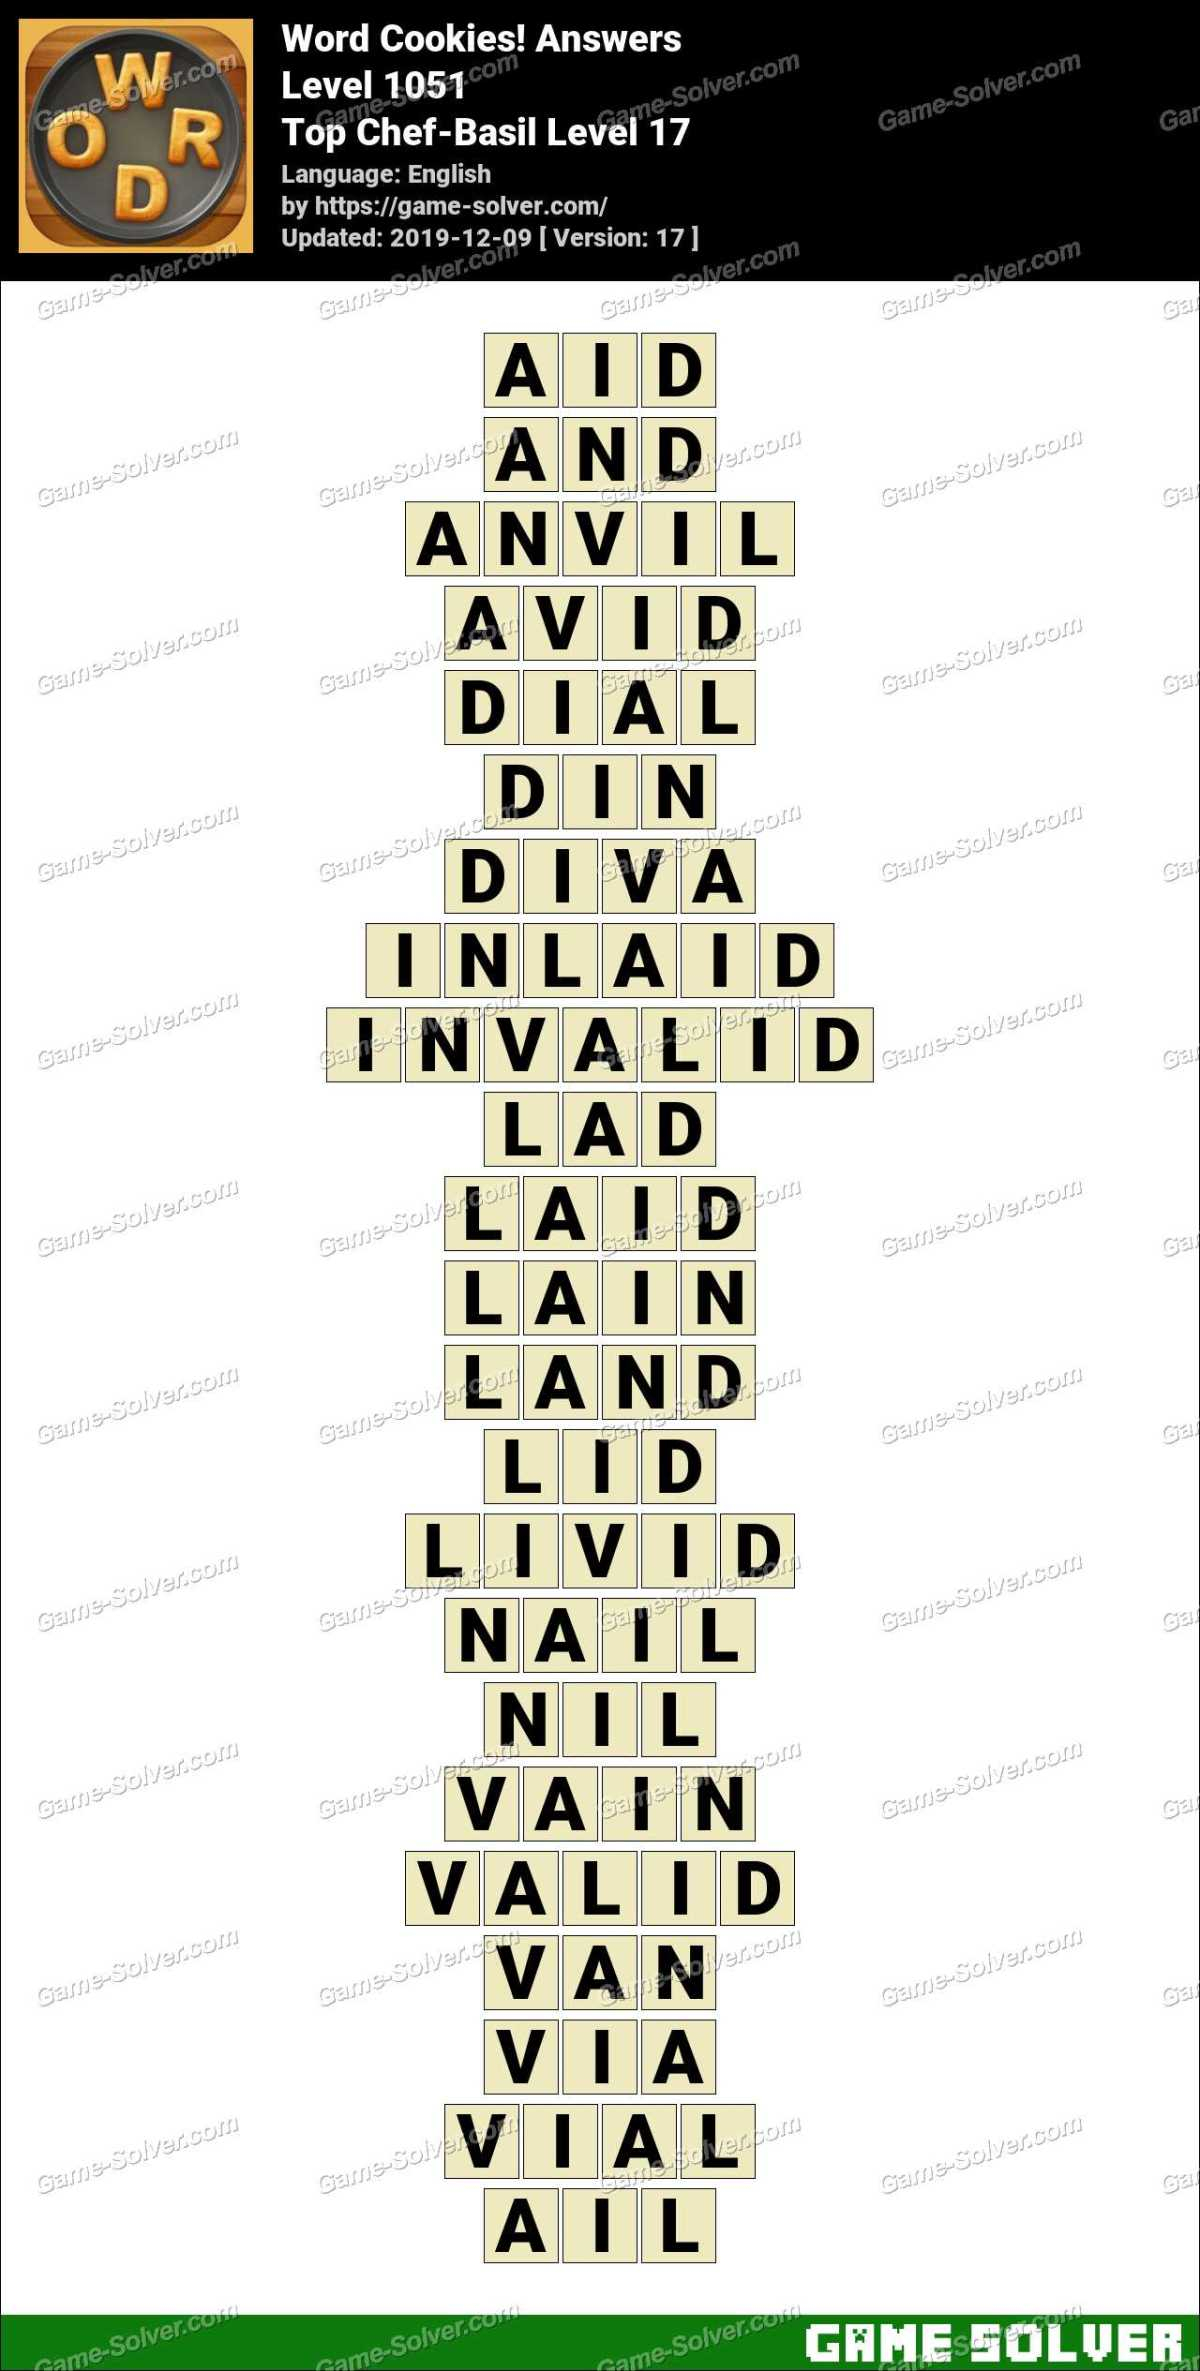 Word Cookies Top Chef-Basil Level 17 Answers